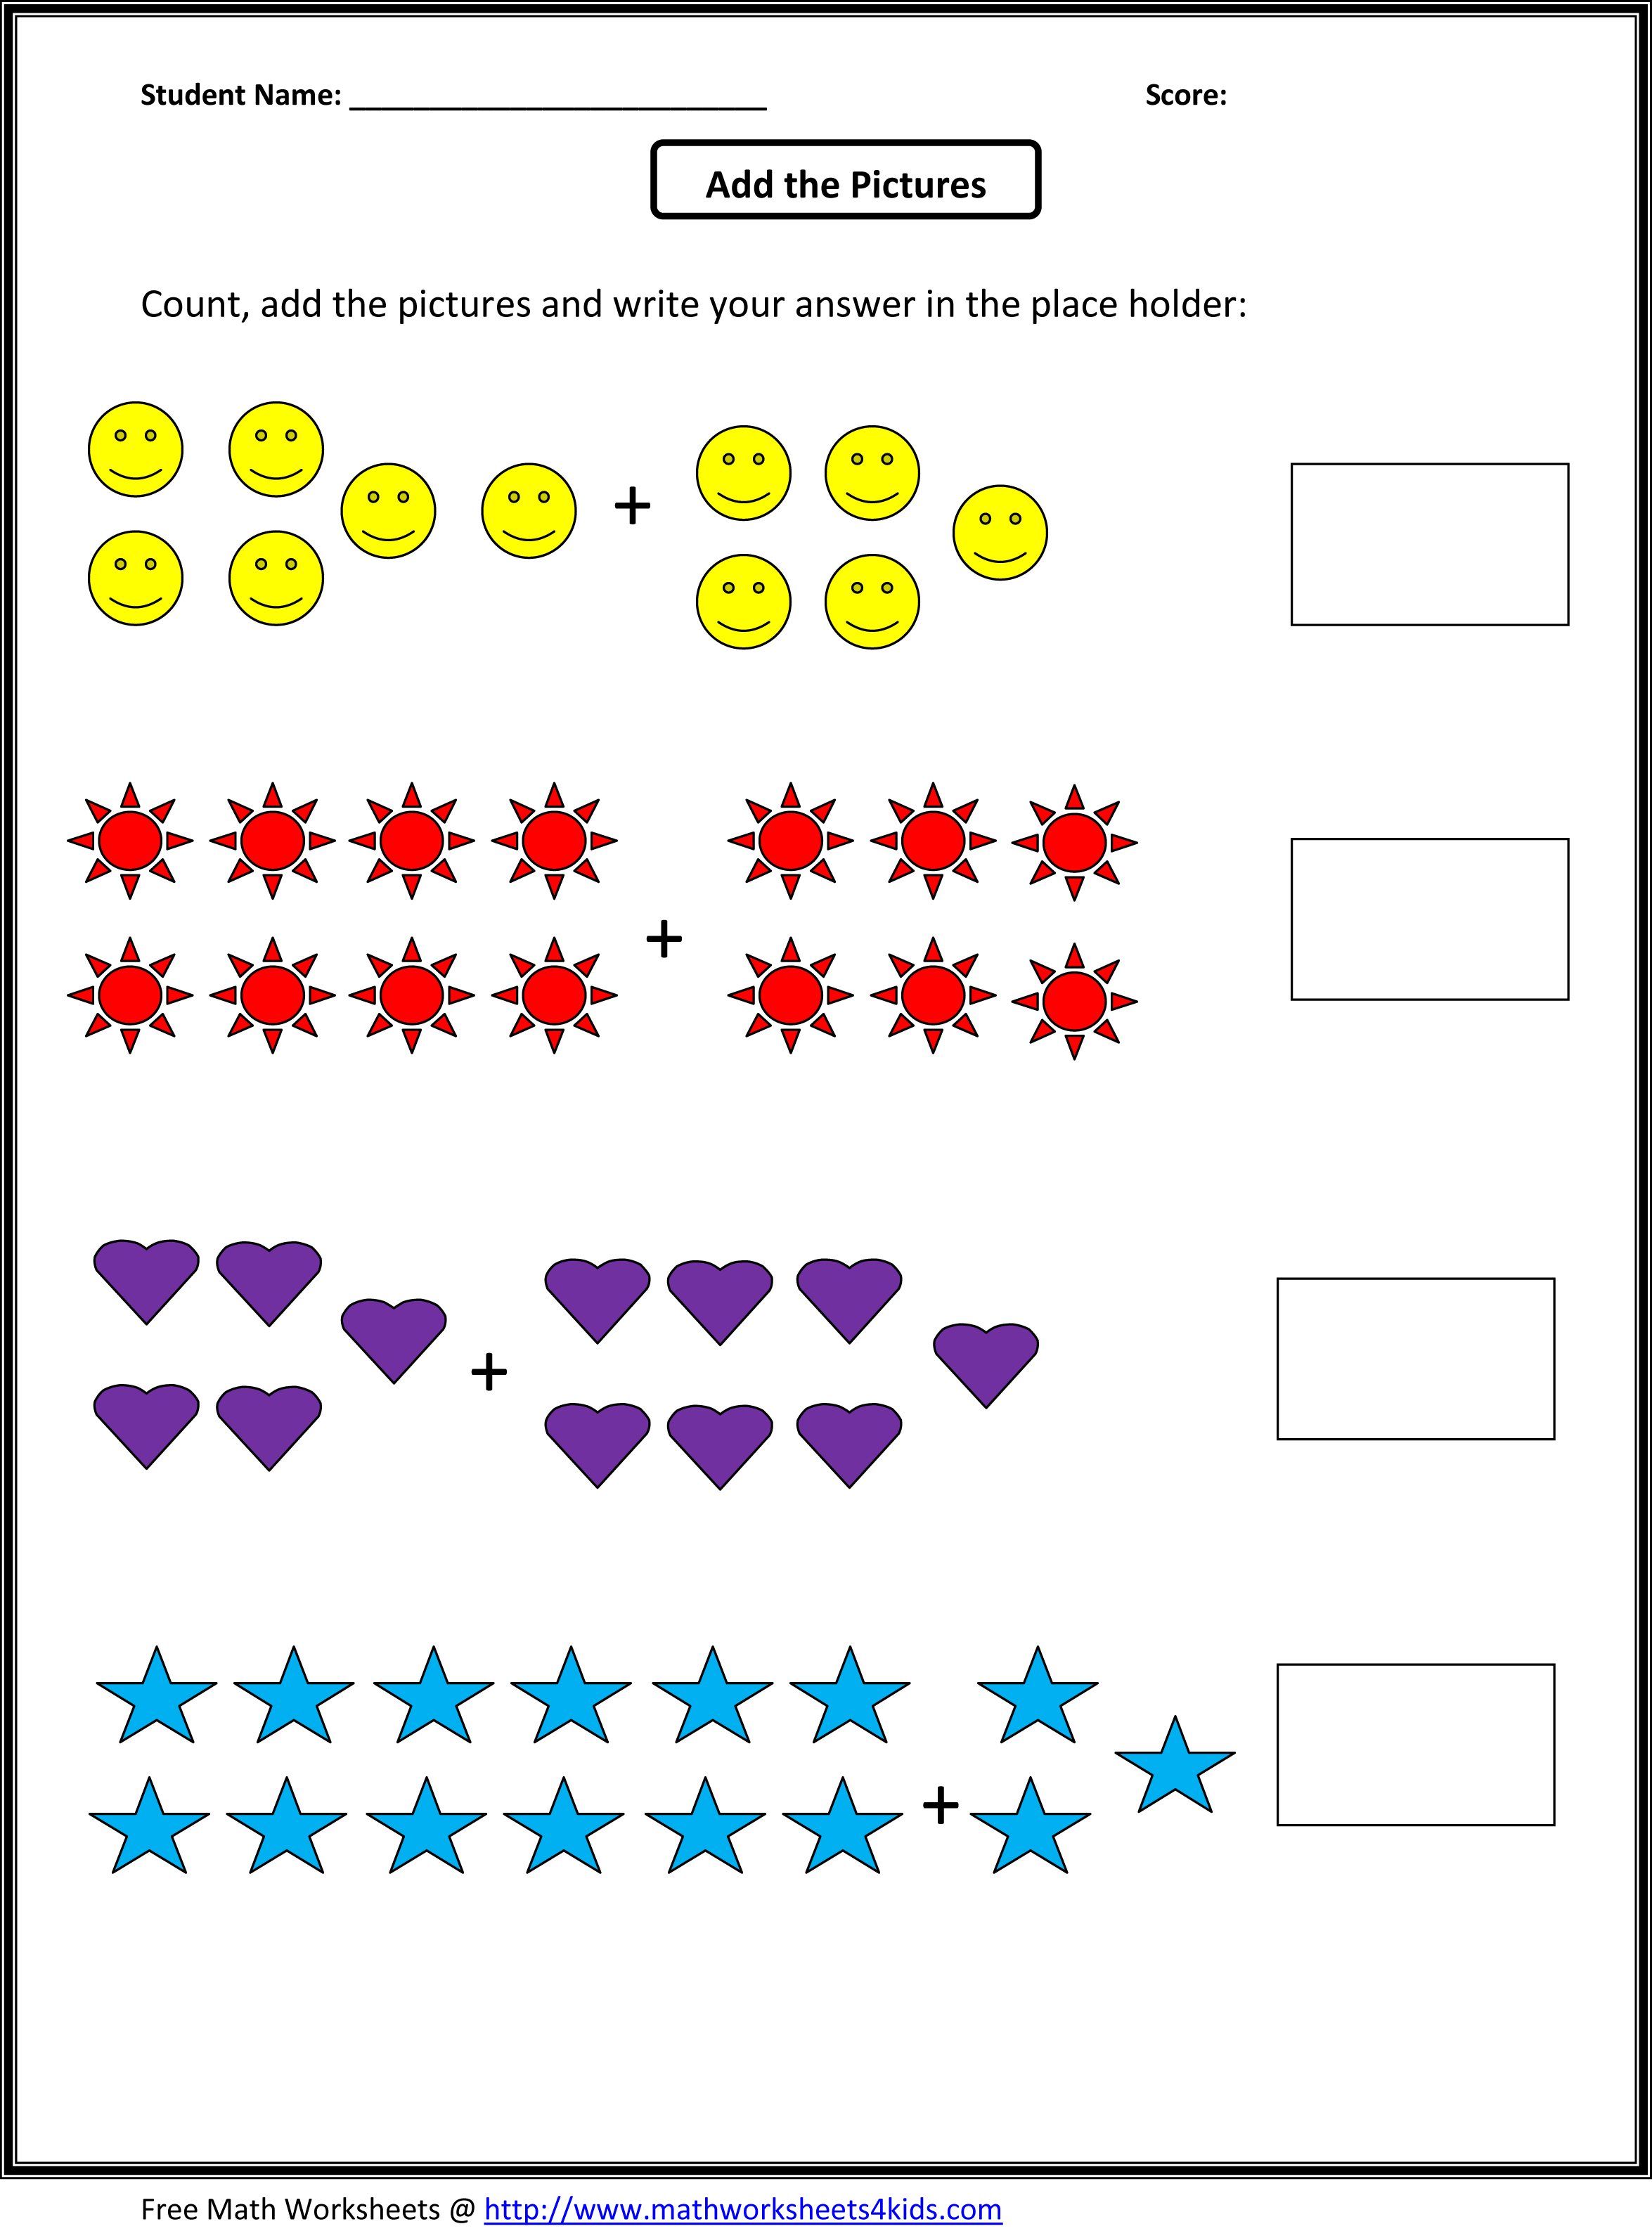 Proatmealus  Personable Grade  Maths Worksheet  Reocurent With Remarkable Math Worksheets For St Grade Free  Reocurent With Cool Prefixes Worksheet Th Grade Also Animals And Their Habitats Worksheets In Addition Compound Words Worksheet Grade  And Excel Vba Save Worksheet As Well As Cause And Effect Worksheets Free Additionally Worksheets On Order Of Adjectives From Reocurentcom With Proatmealus  Remarkable Grade  Maths Worksheet  Reocurent With Cool Math Worksheets For St Grade Free  Reocurent And Personable Prefixes Worksheet Th Grade Also Animals And Their Habitats Worksheets In Addition Compound Words Worksheet Grade  From Reocurentcom